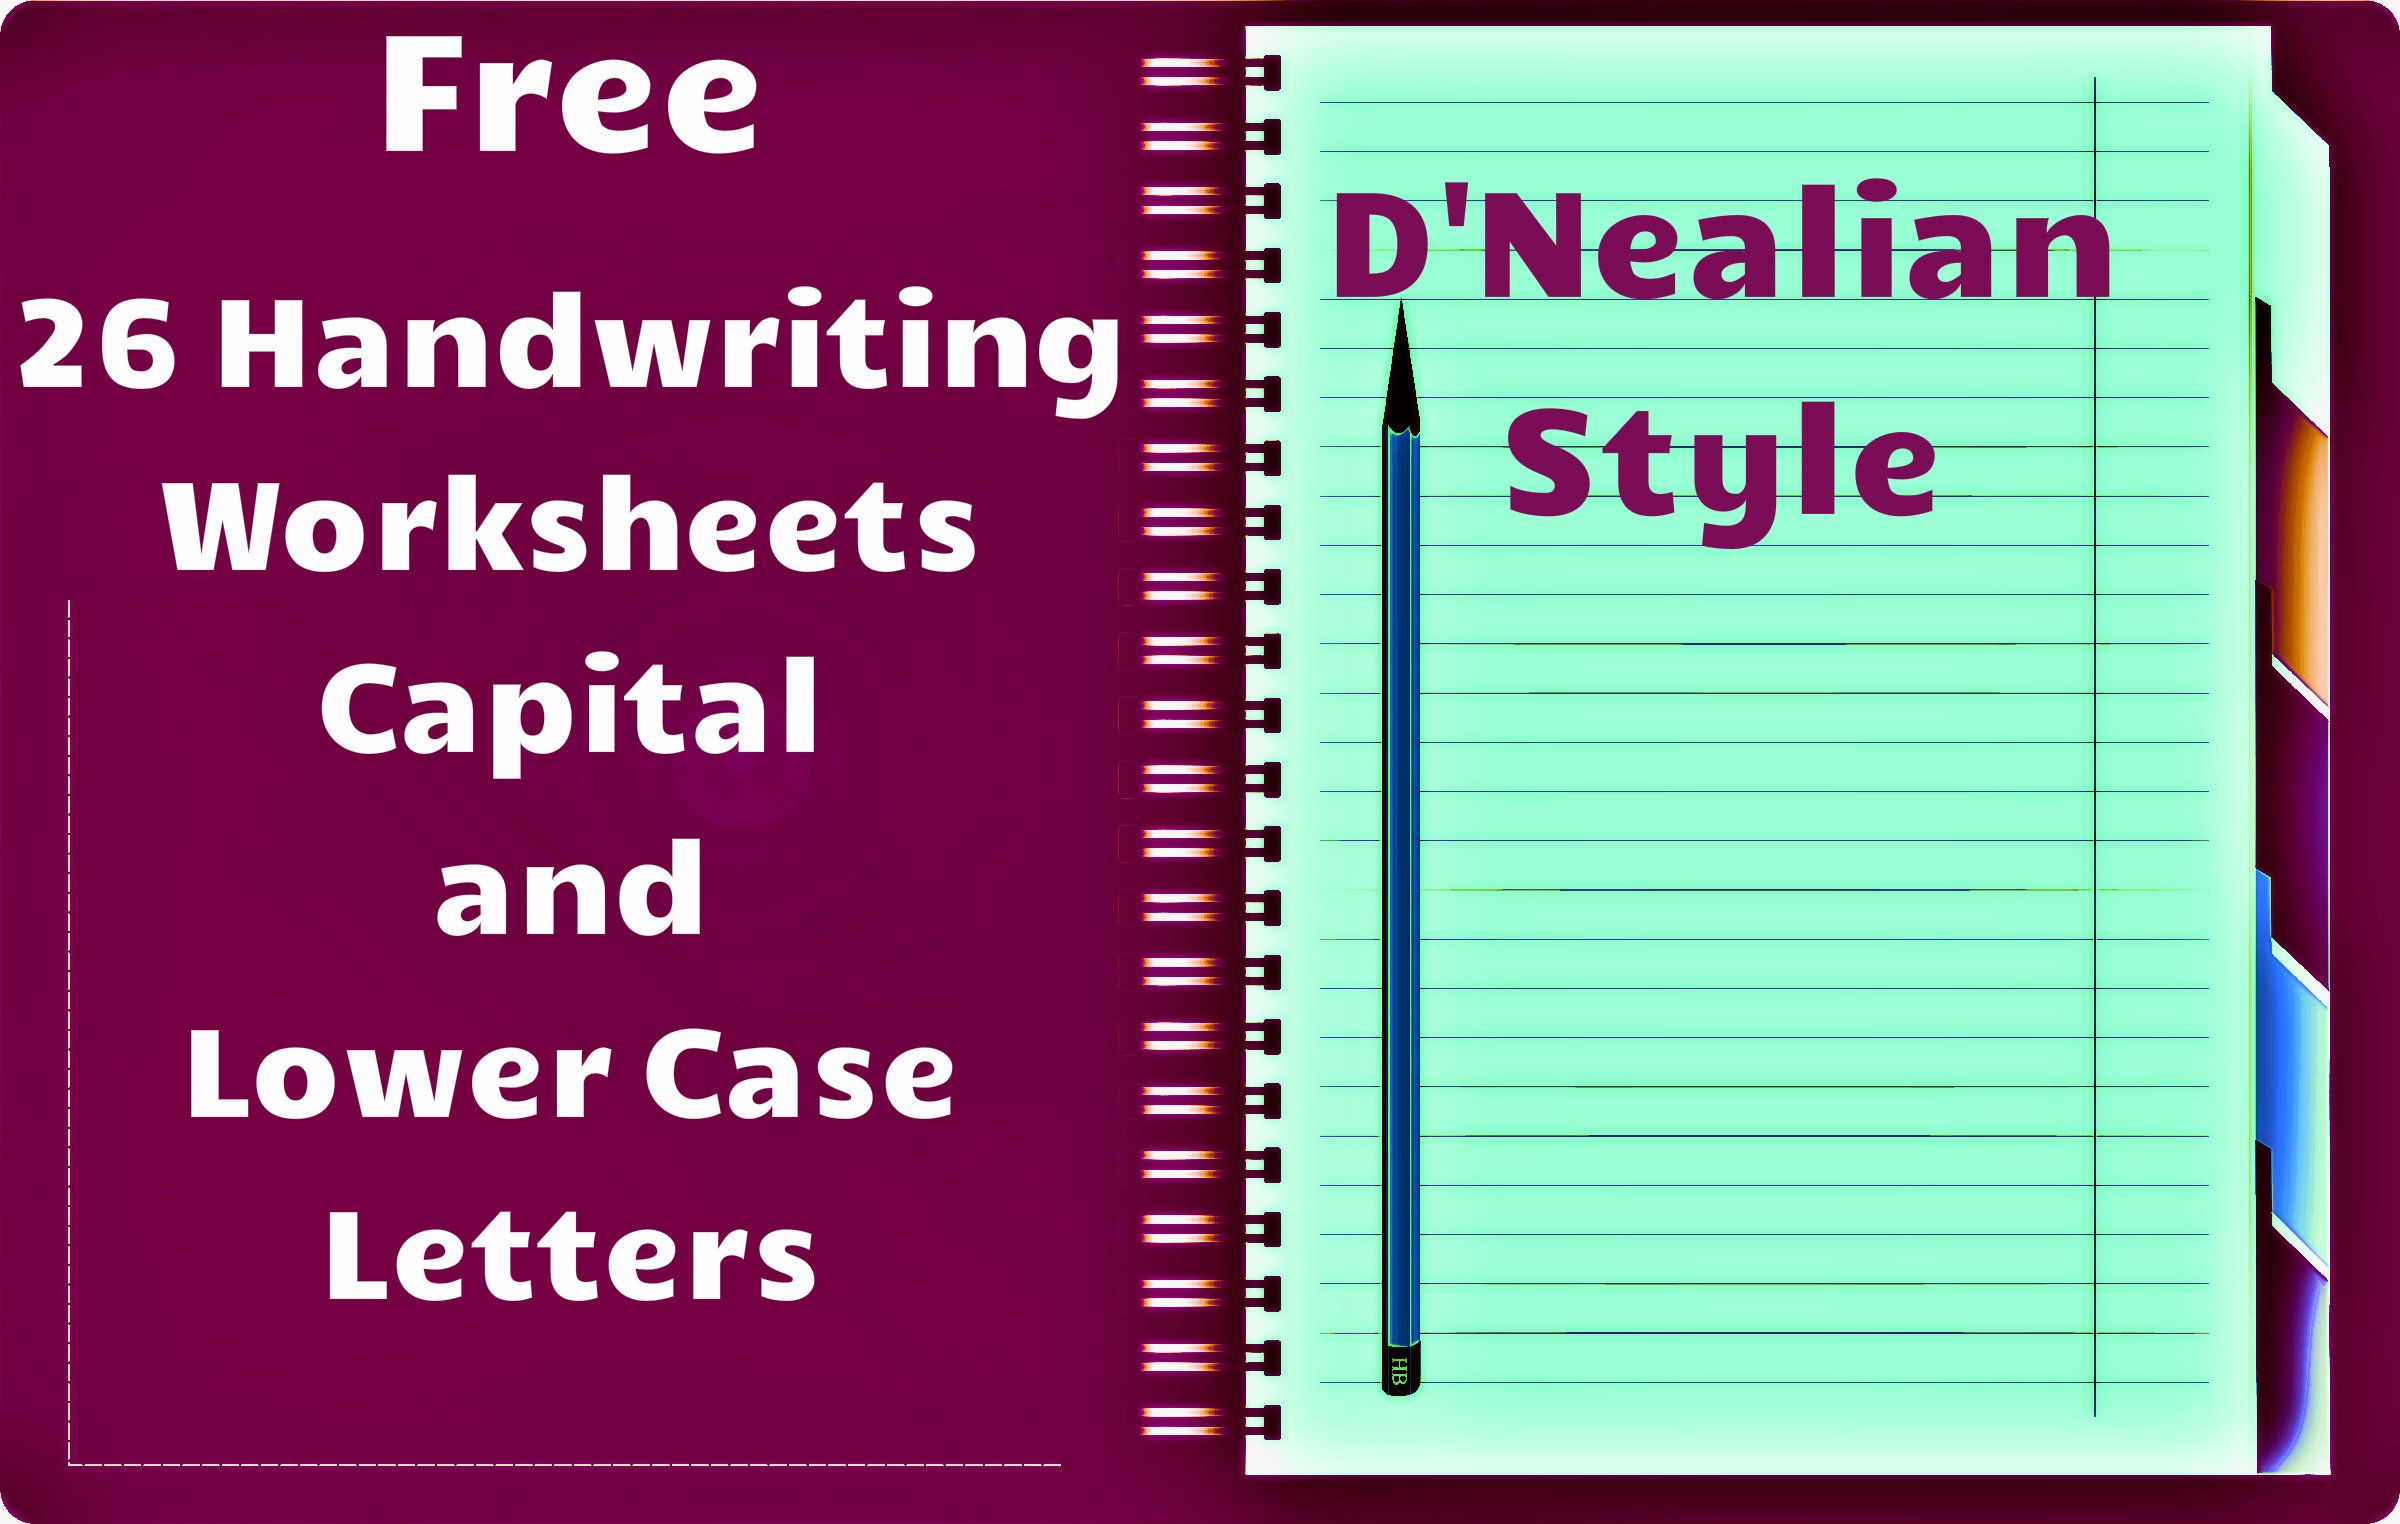 Printables D Nealian Handwriting Worksheets Free 1000 images about dnealian handwriting on pinterest hand writing alphabet tracing worksheets and practice work